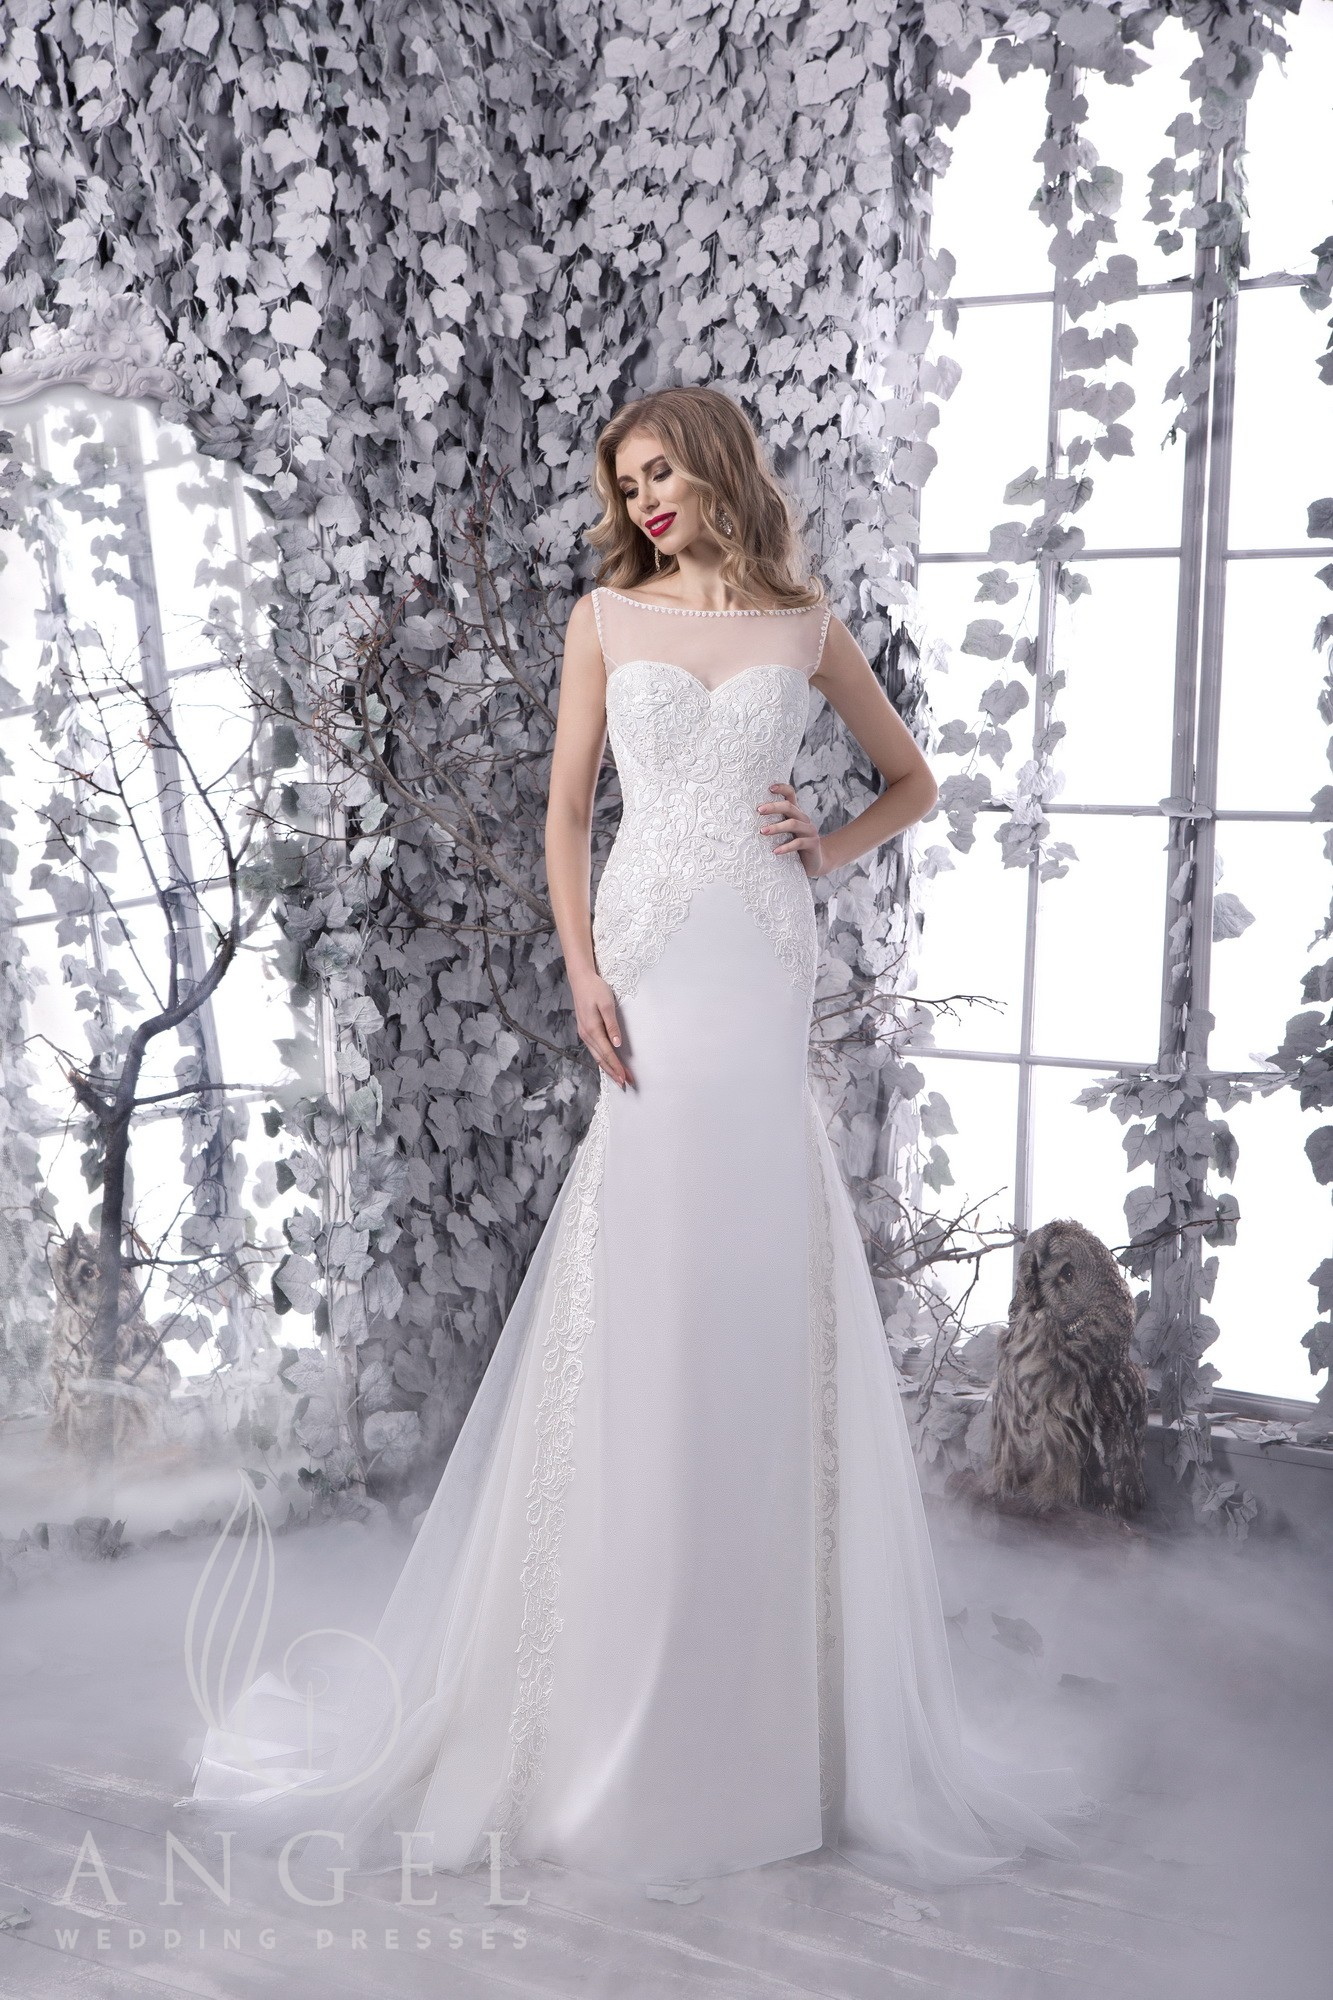 https://angel-novias.com/images/stories/virtuemart/product/BONNI 1.jpg